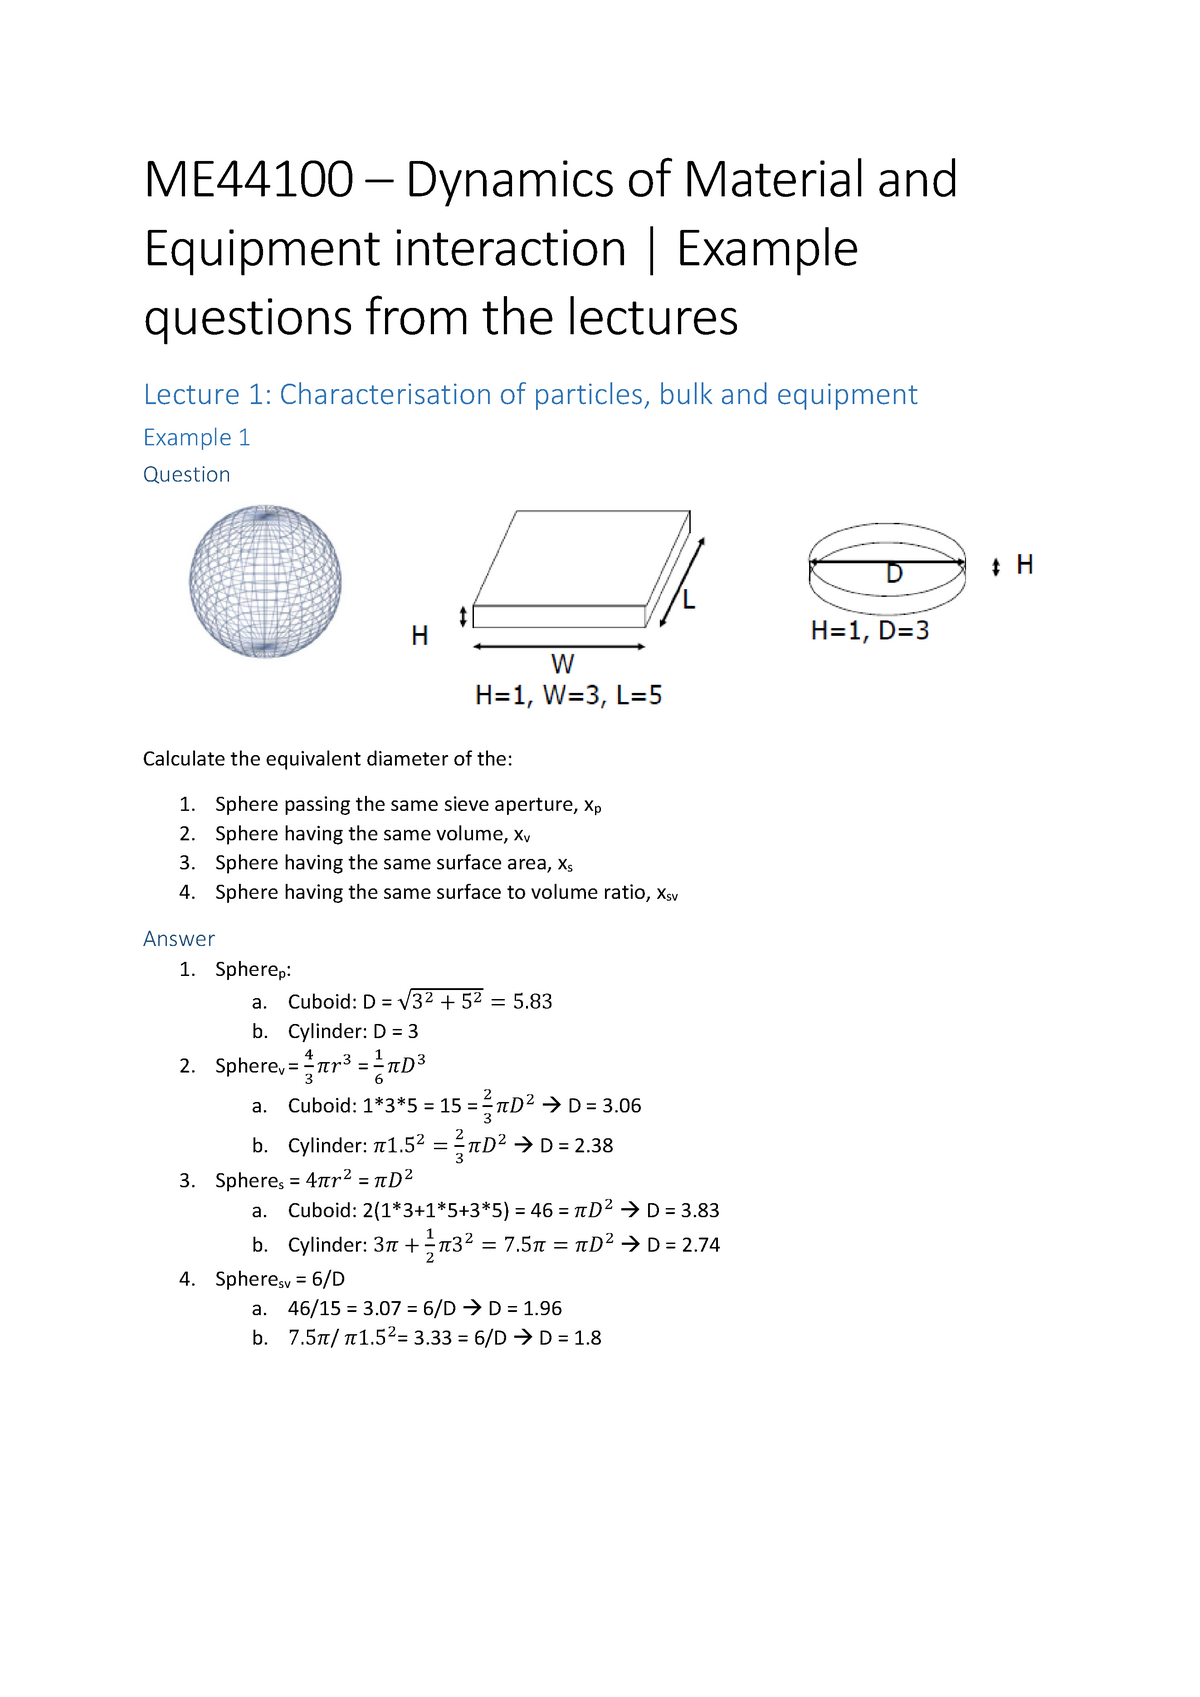 ME44100 - Dynamics of Materials and Equipment Interaction - Examples